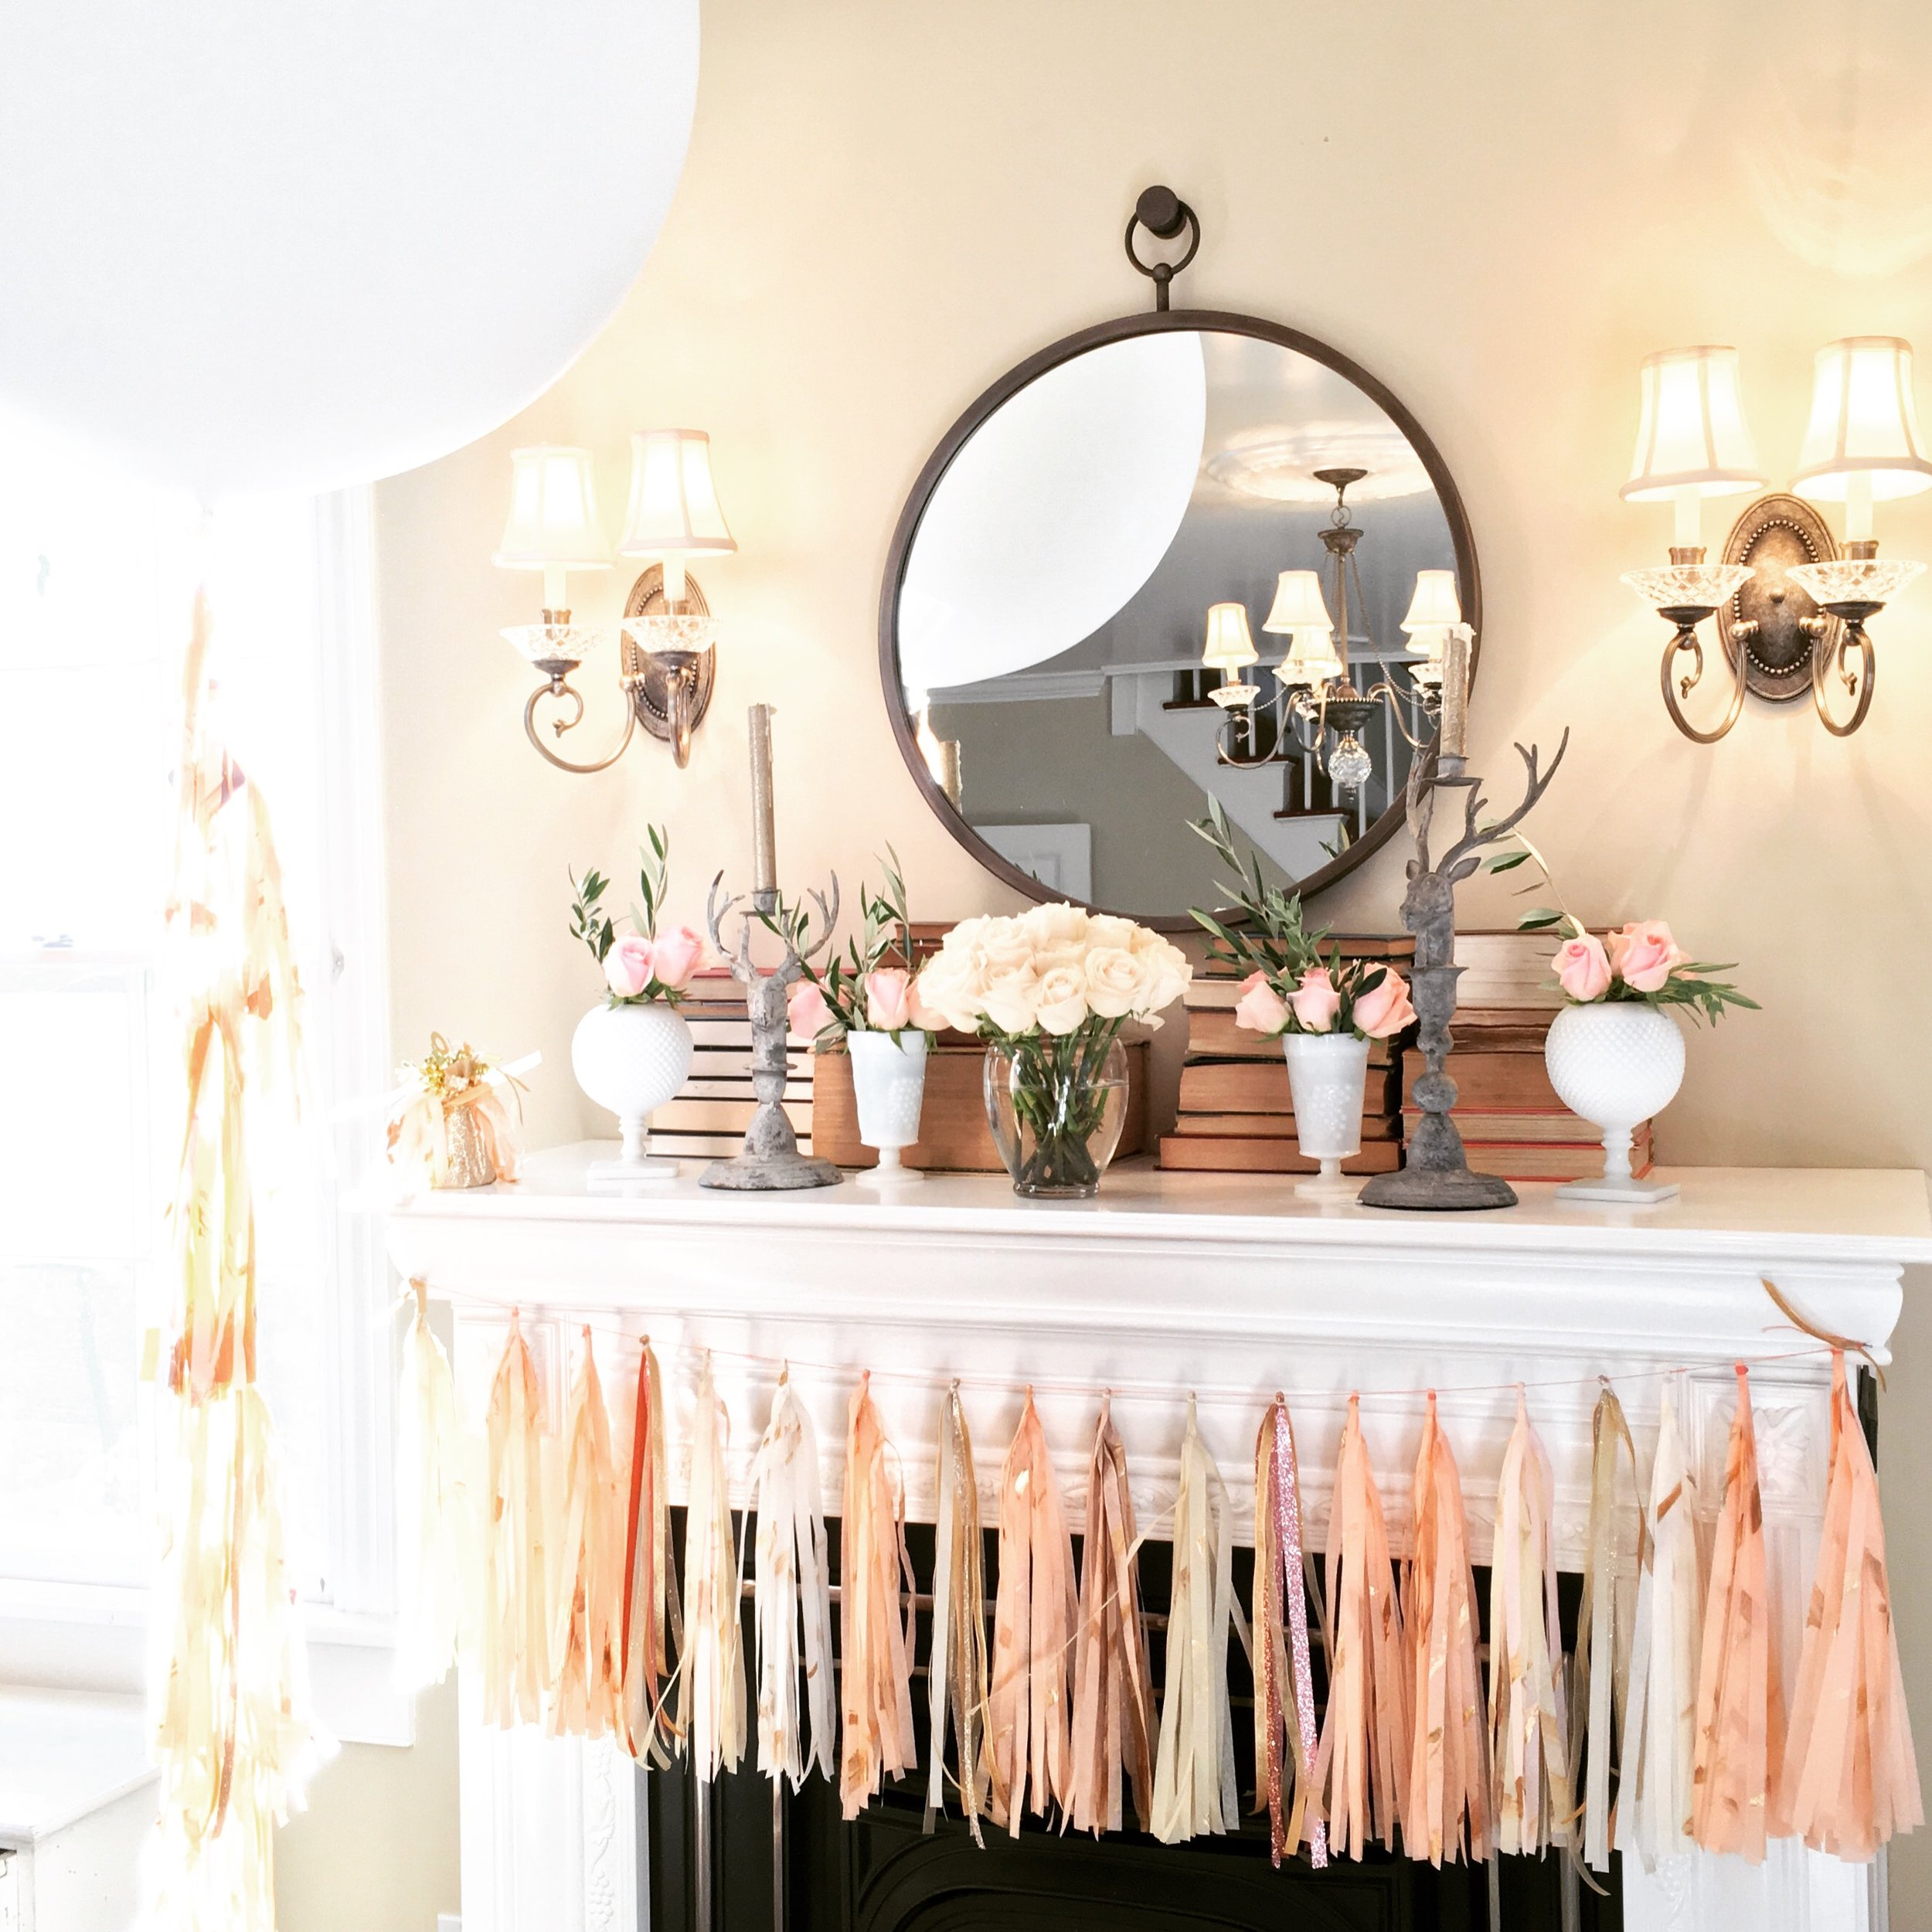 Hand painted garland is trending in home decor and party styling for Lifted Balloons' clients this year. - Tissue tassels hand painted with gold metallics, or mixed metallics, seem to be flying out of the studio!